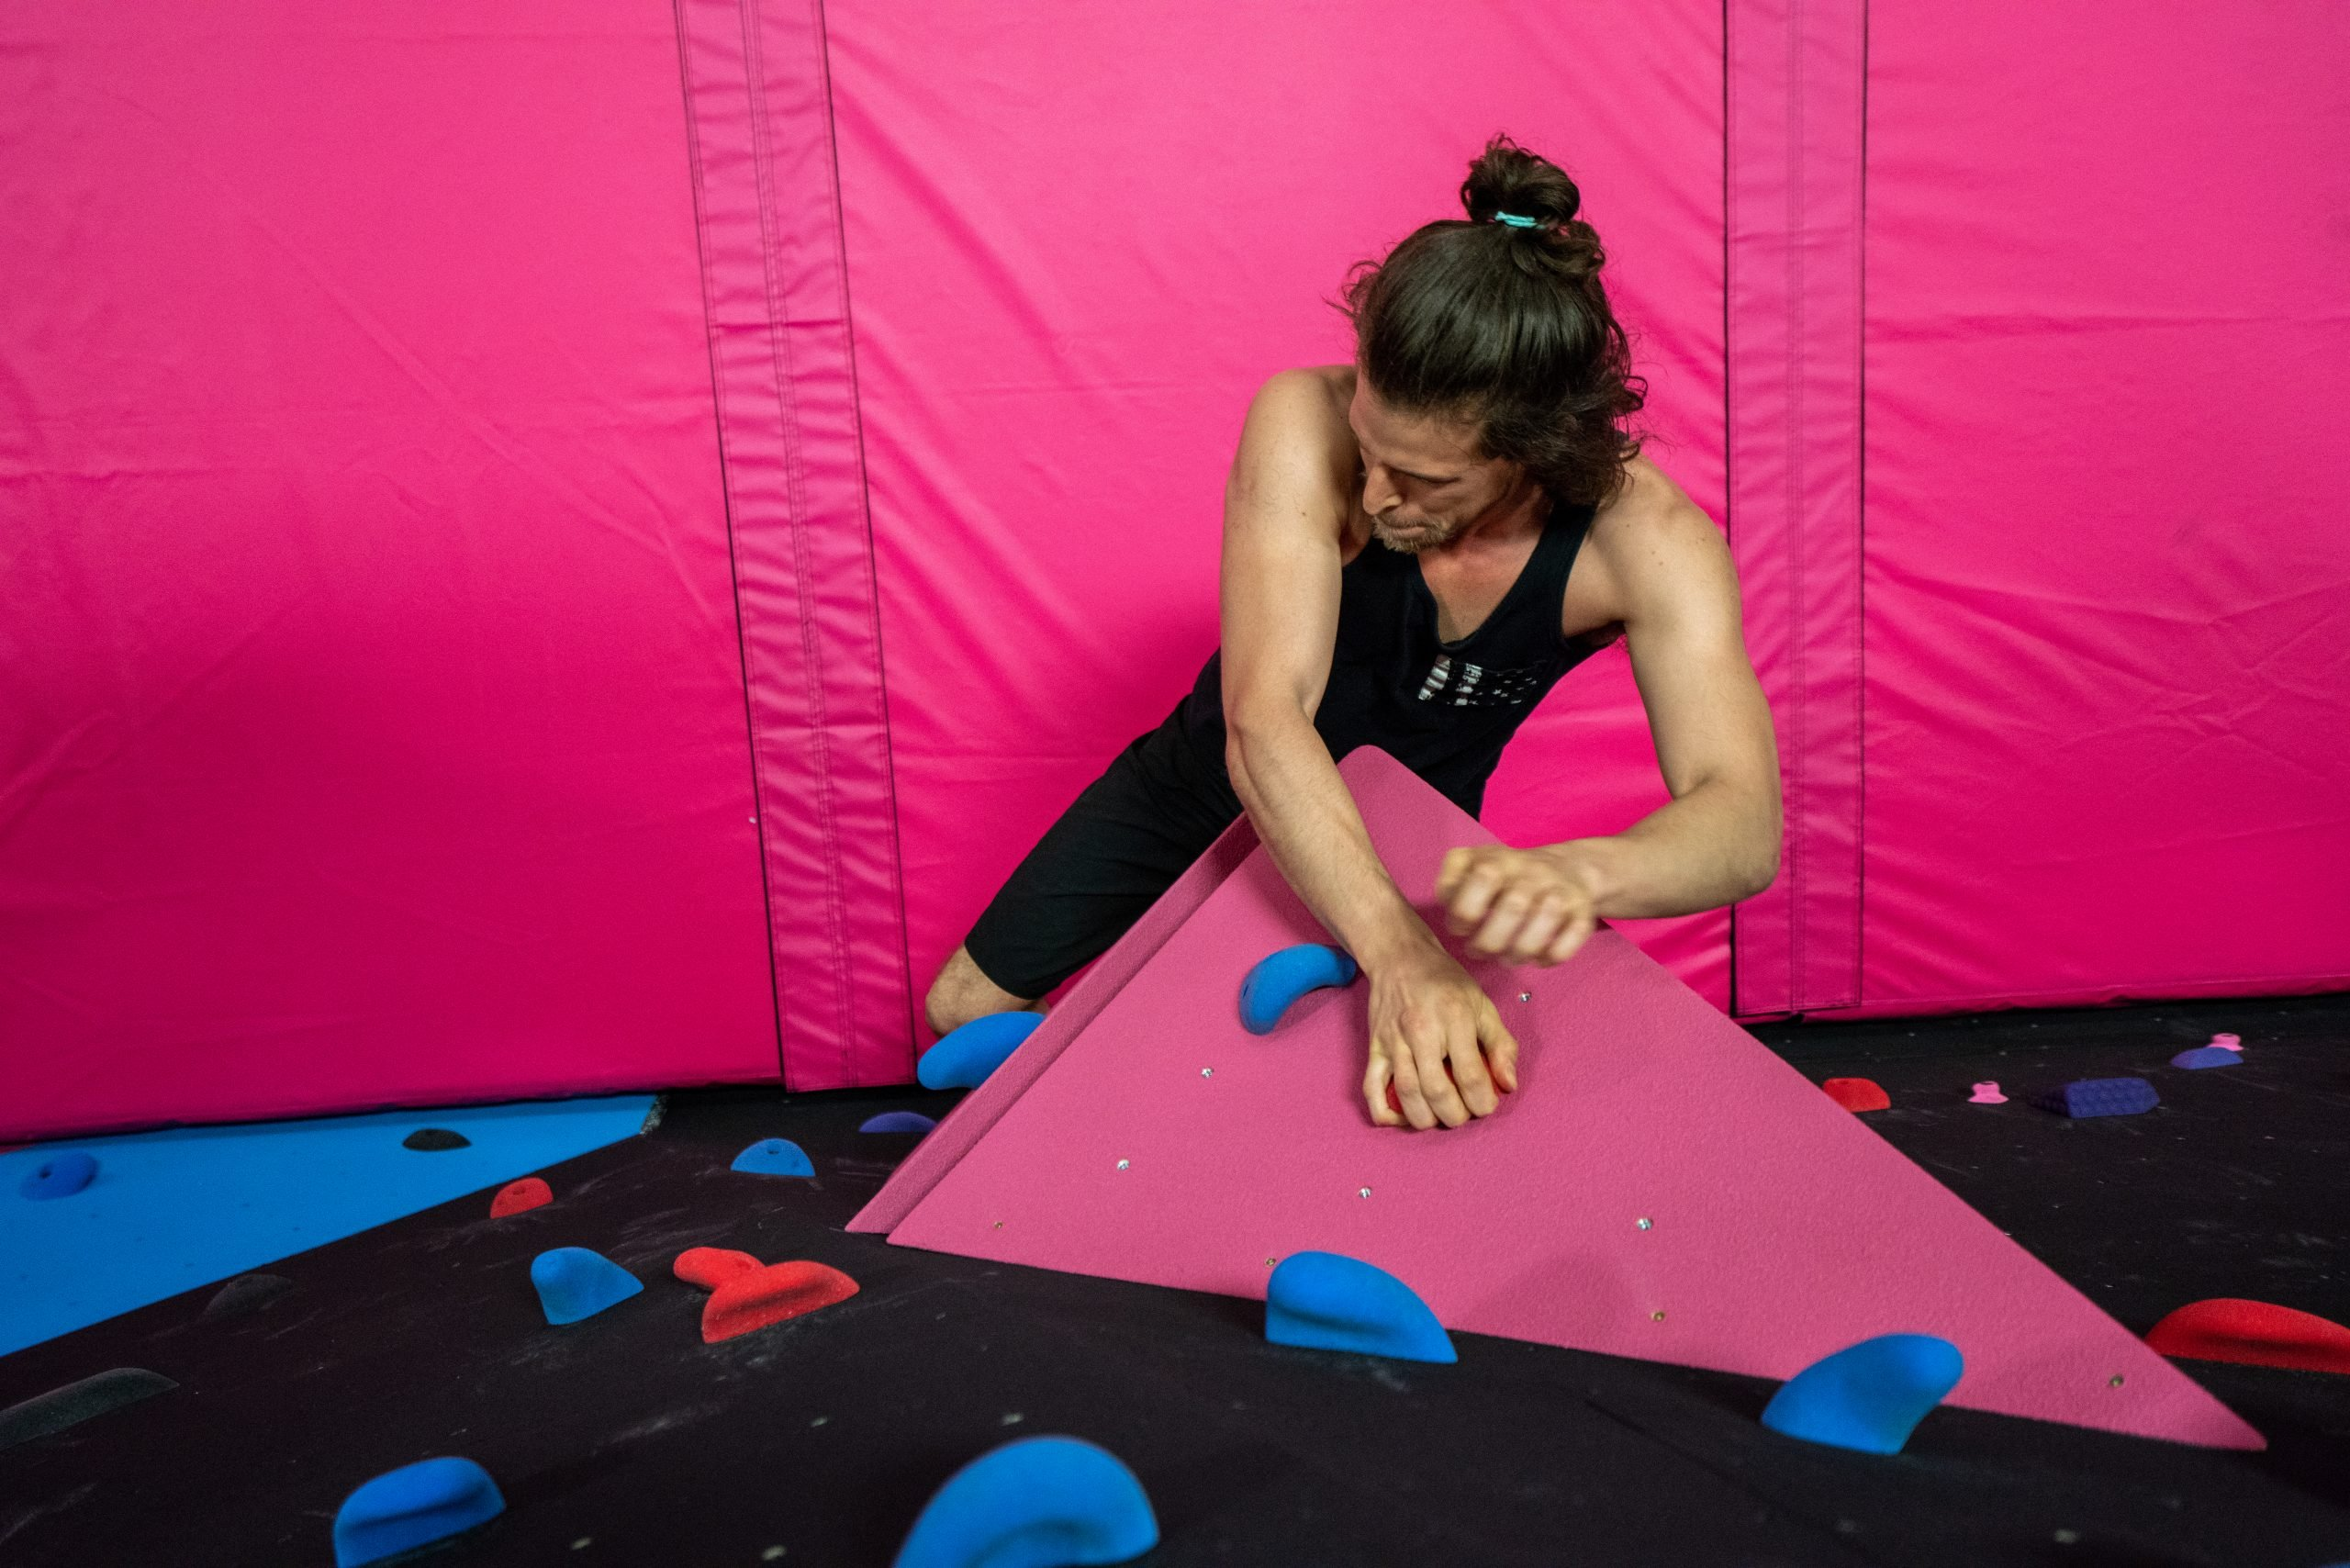 Small bouldering wall, with overhang, volumes and Canada Crash Pads, custom in pink